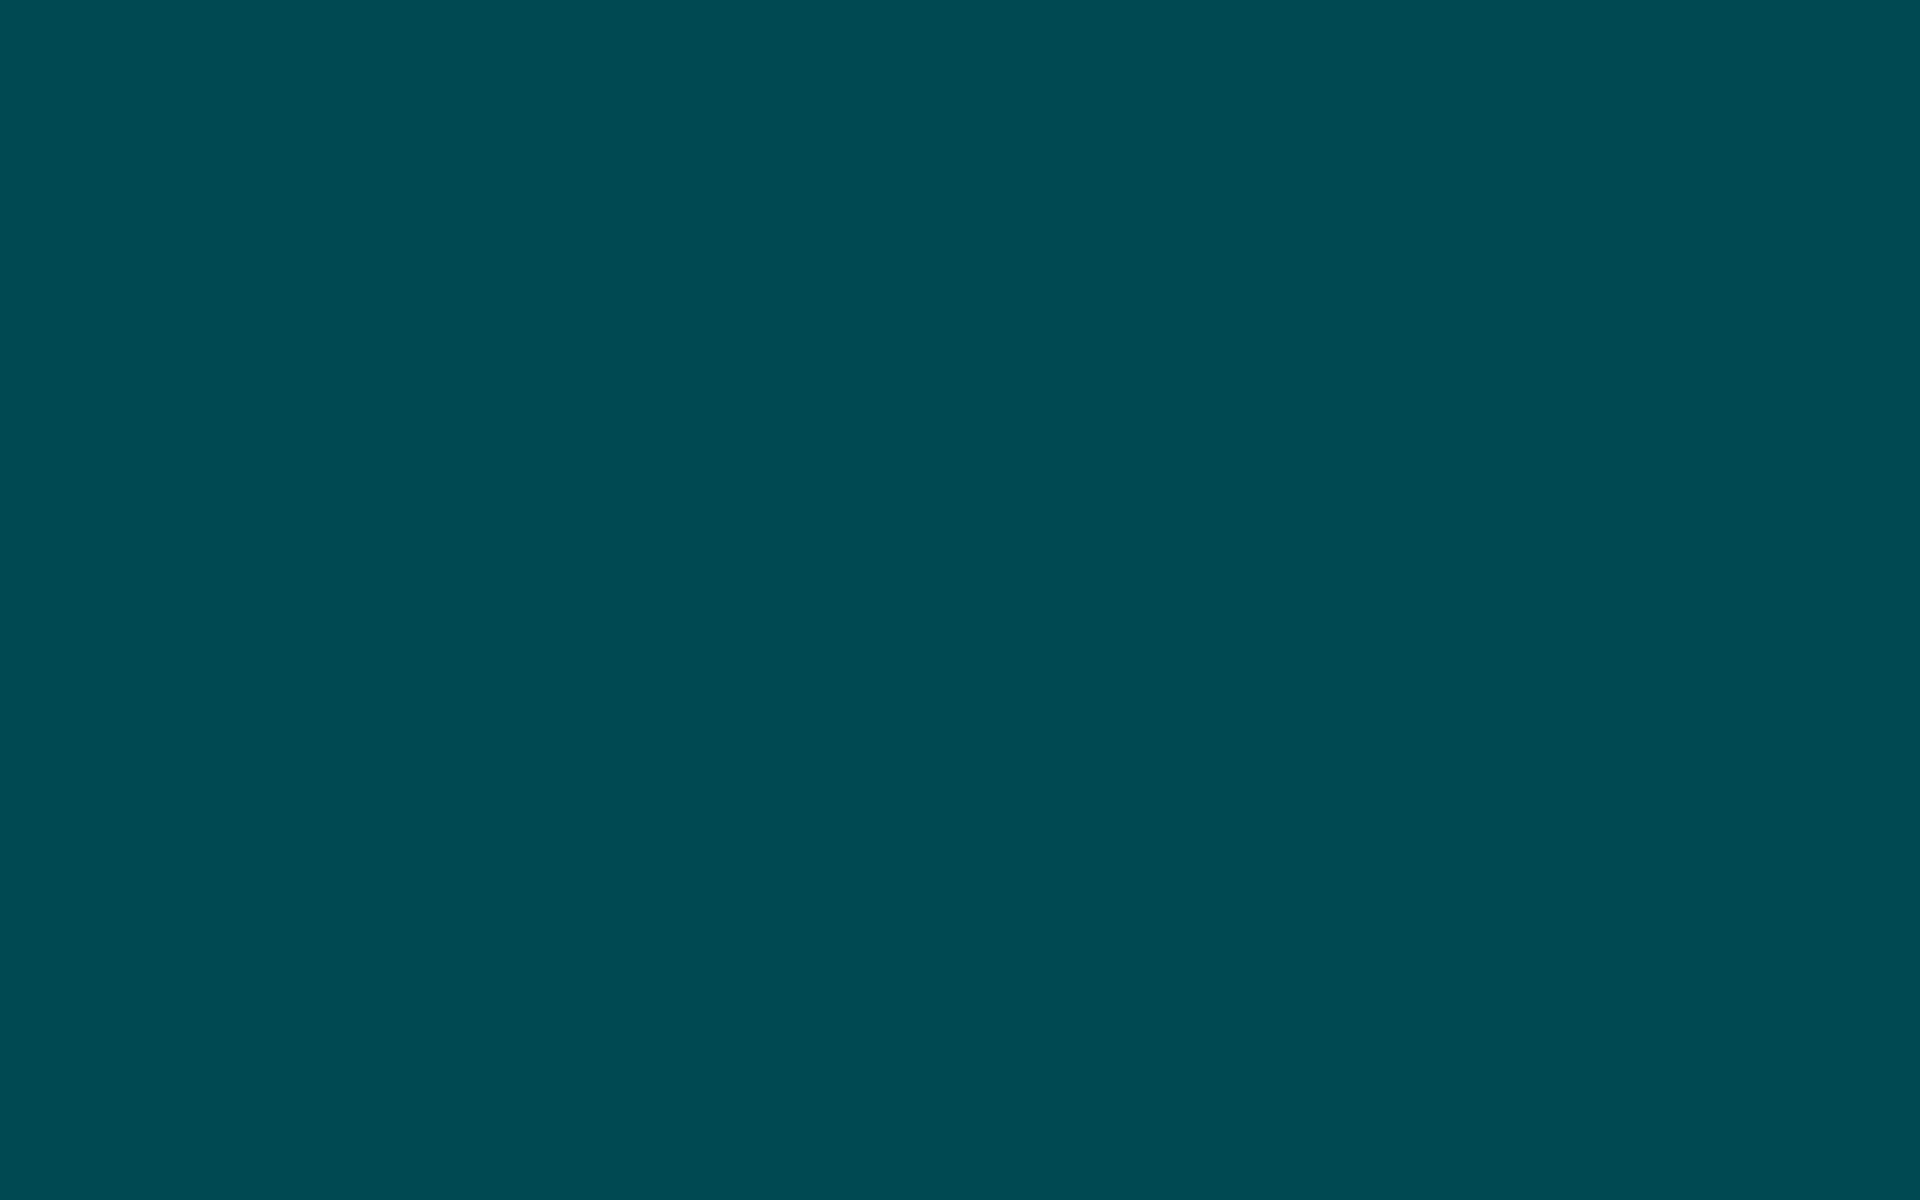 1920x1200 Midnight Green Solid Color Background